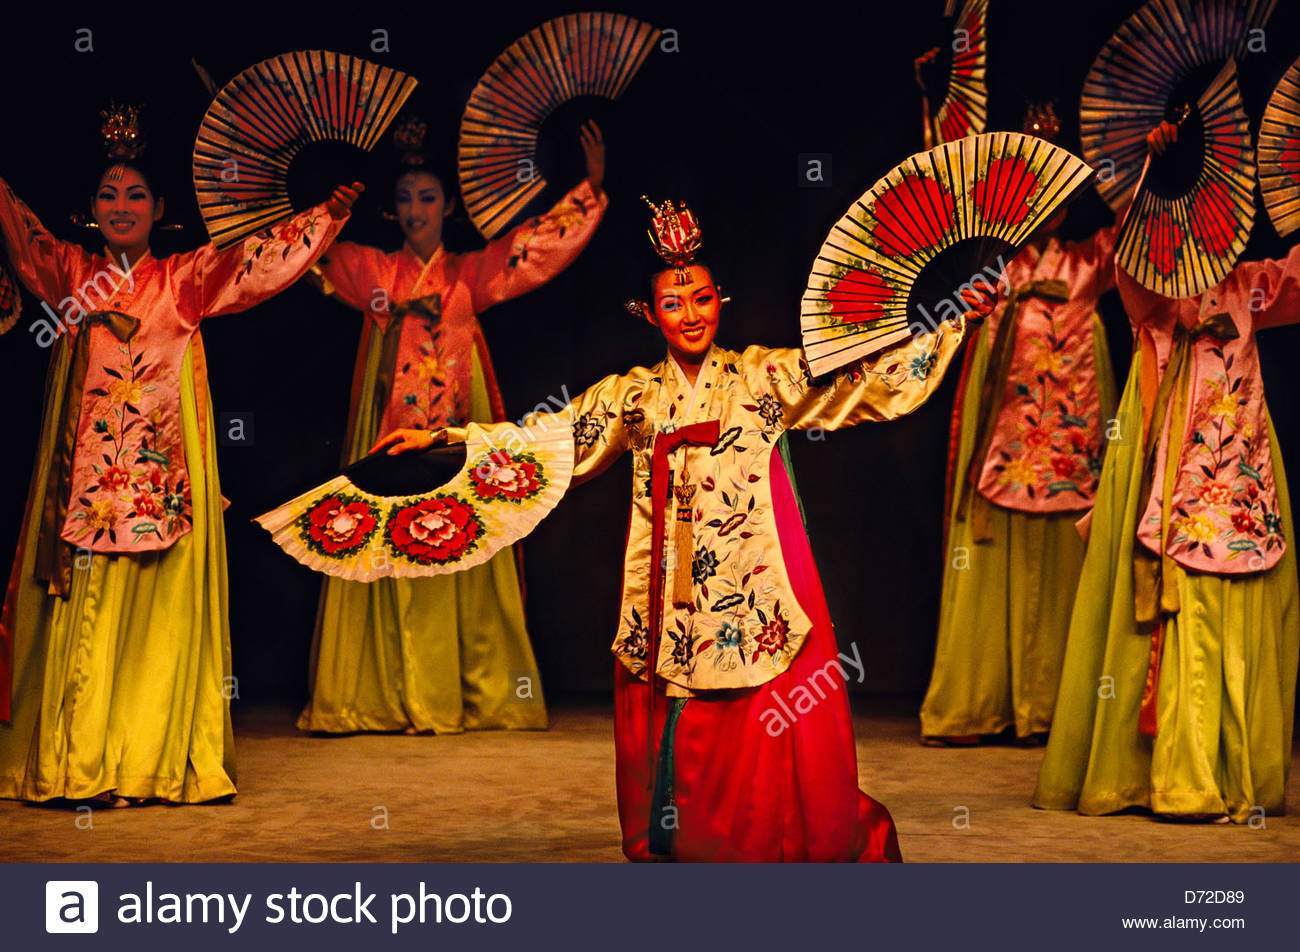 Traditional dance, music set to dazzle over Lunar New Year ...